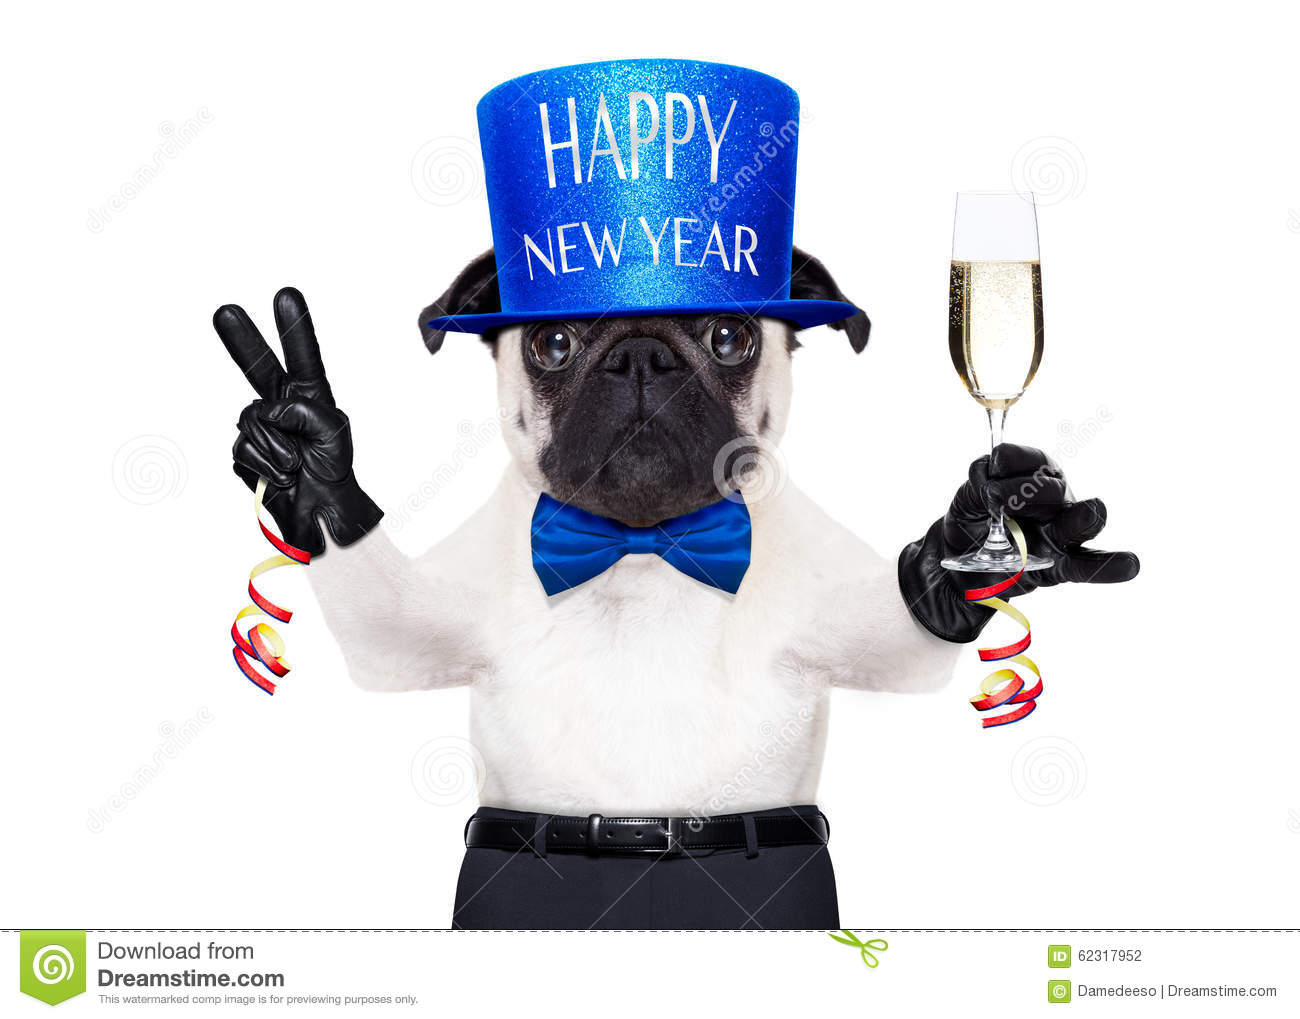 Happy new year dog stock photo. Image of funny, greeting - 62317952